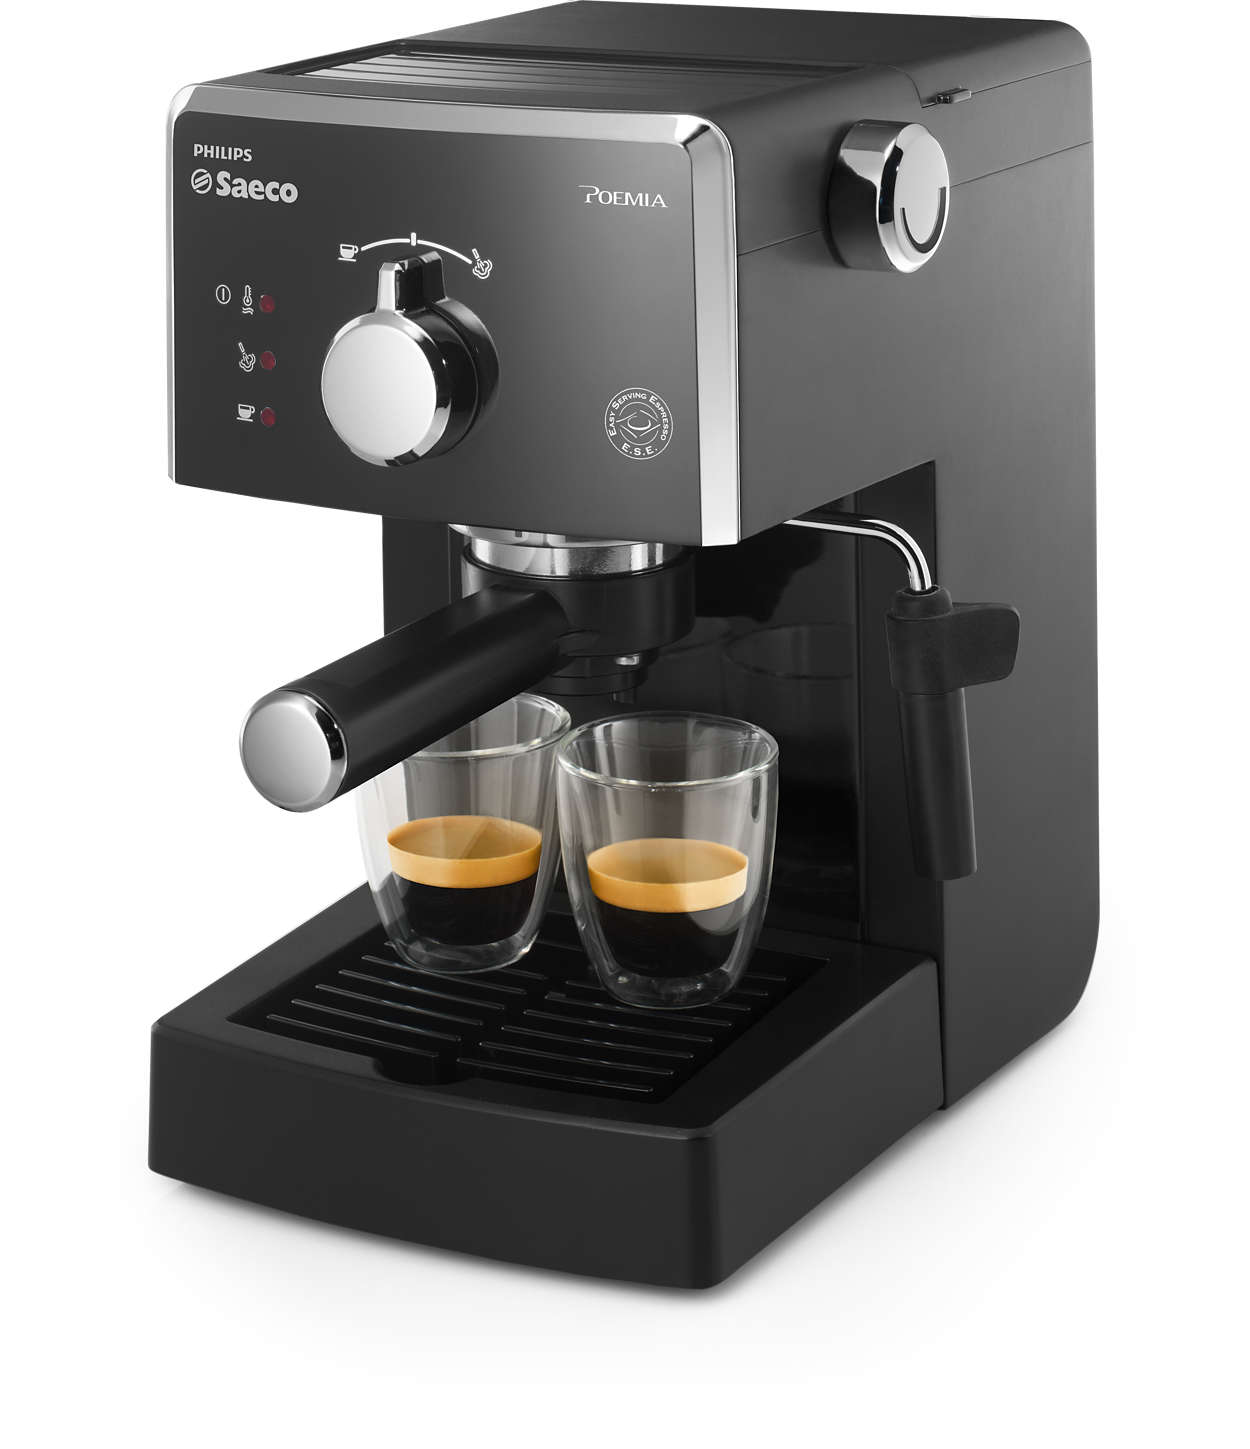 poemia manual espresso machine hd8323 08 saeco. Black Bedroom Furniture Sets. Home Design Ideas